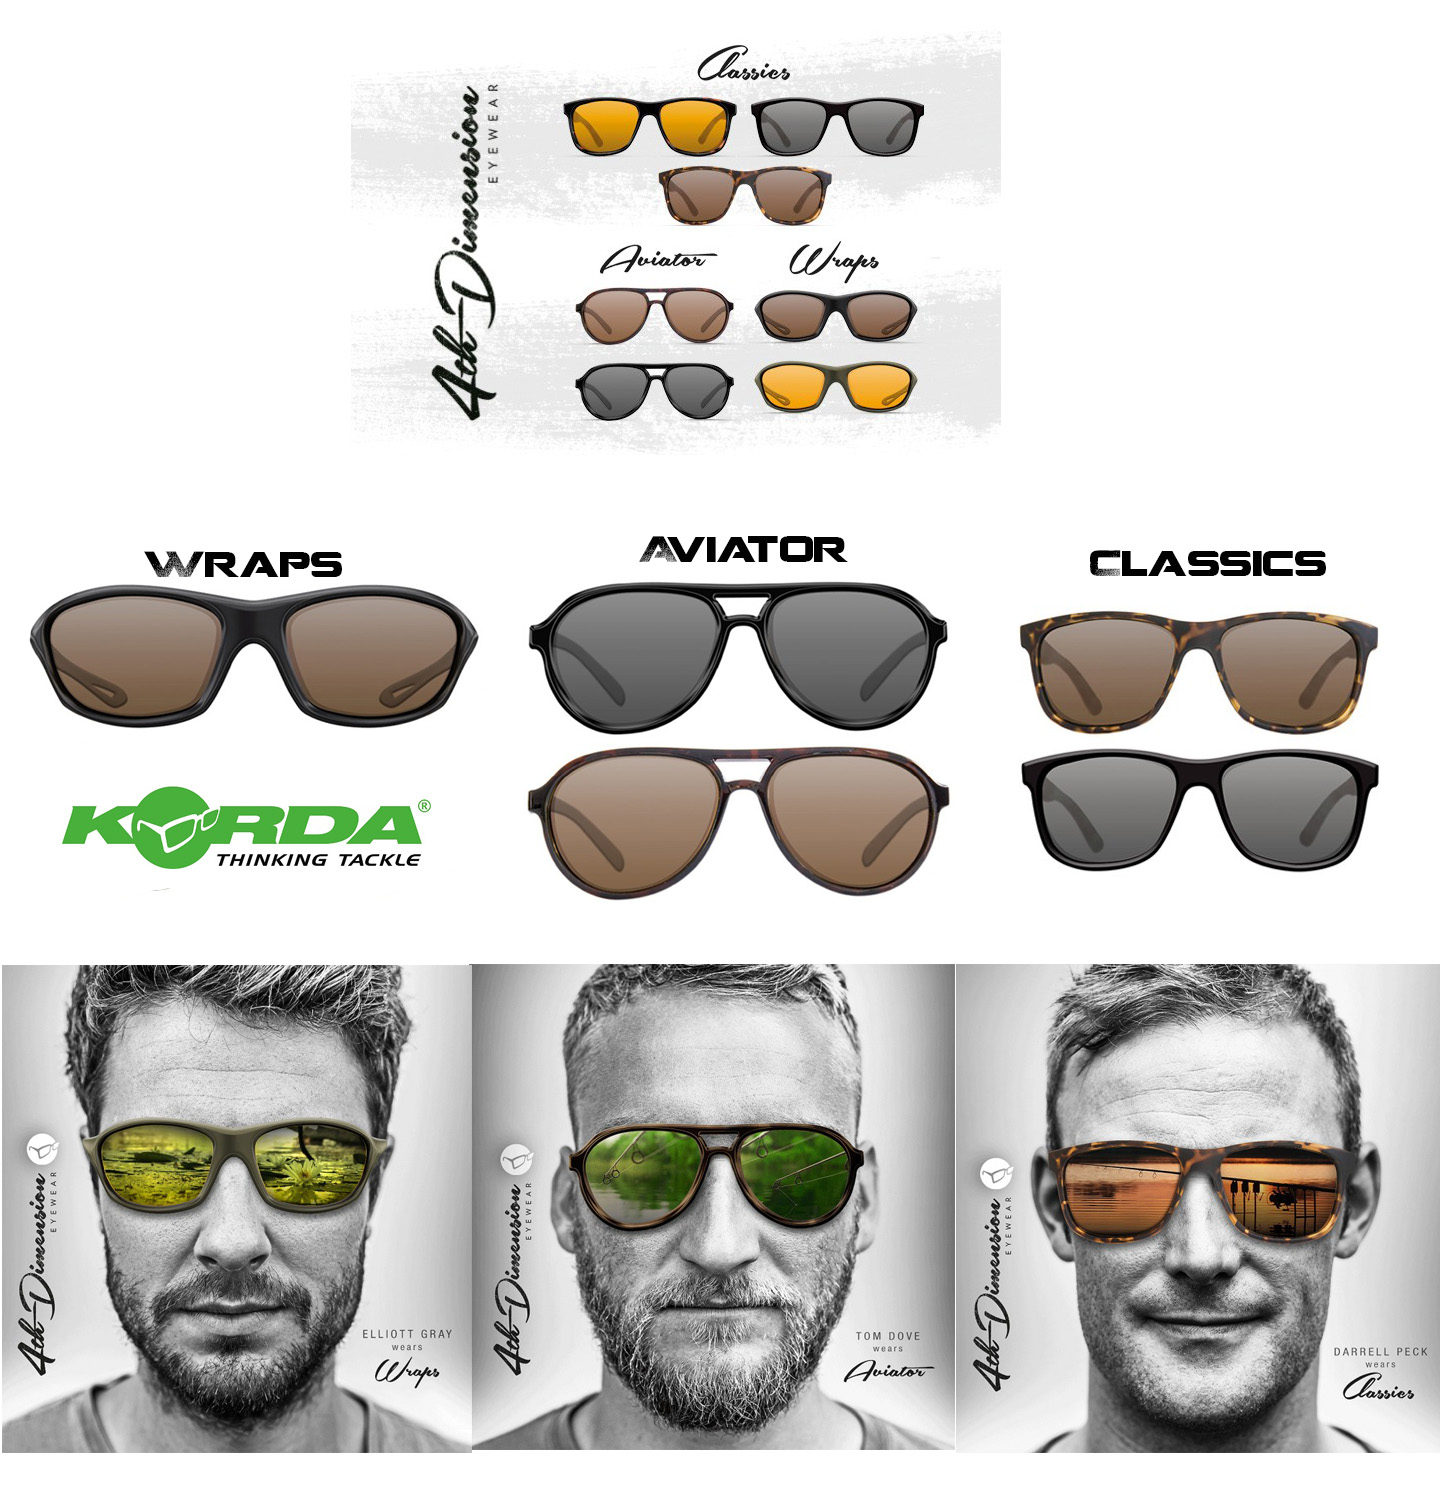 d79fdef8b9a3 Polarized Glasses Fishing Korda Classics Wraps Aviator Top Quality Carp